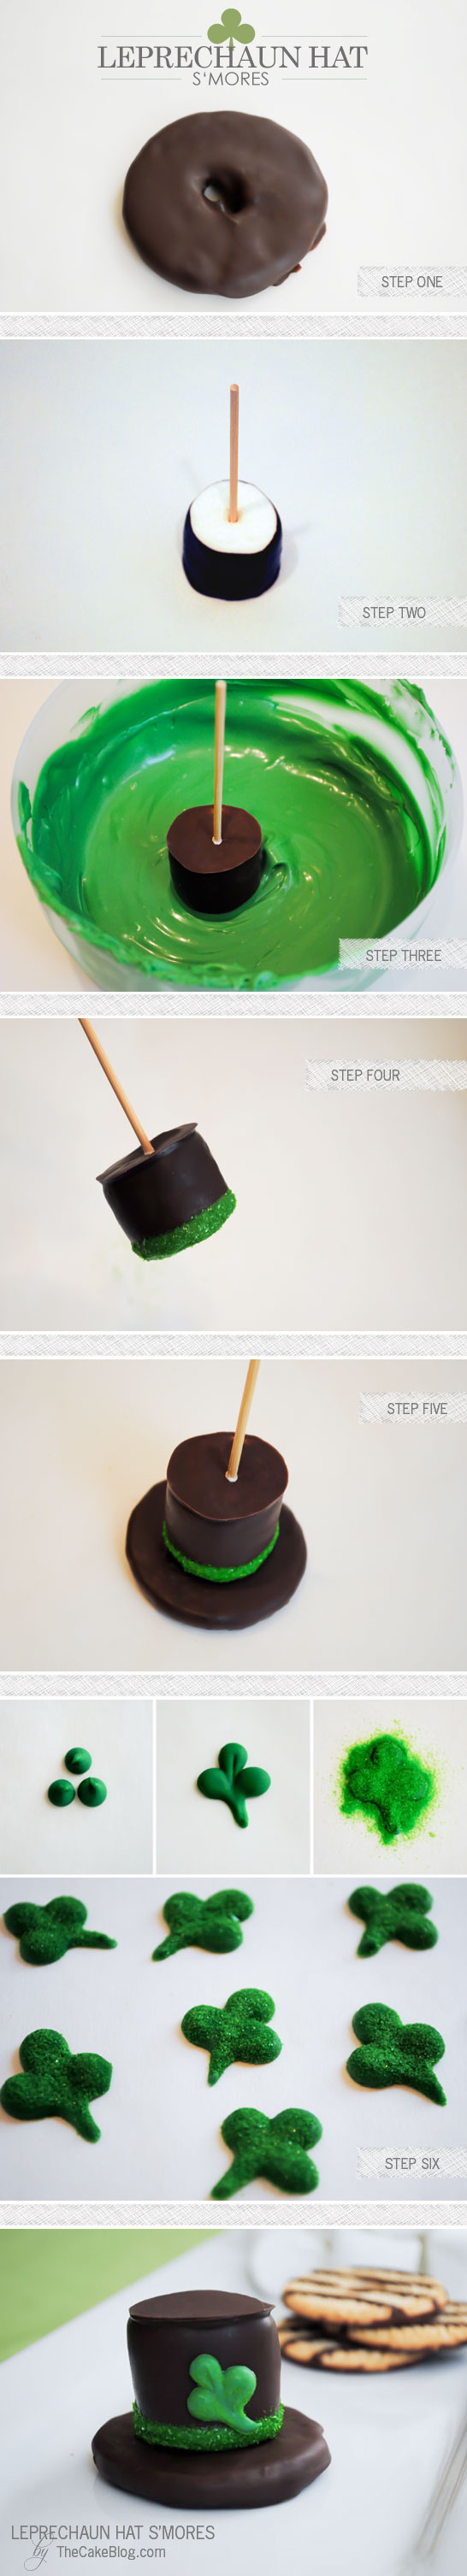 Leprechaun Hat S'mores - a festive St. Patrick's day treat that the kids will love | Carrie Sellman for TheCakeBlog.com